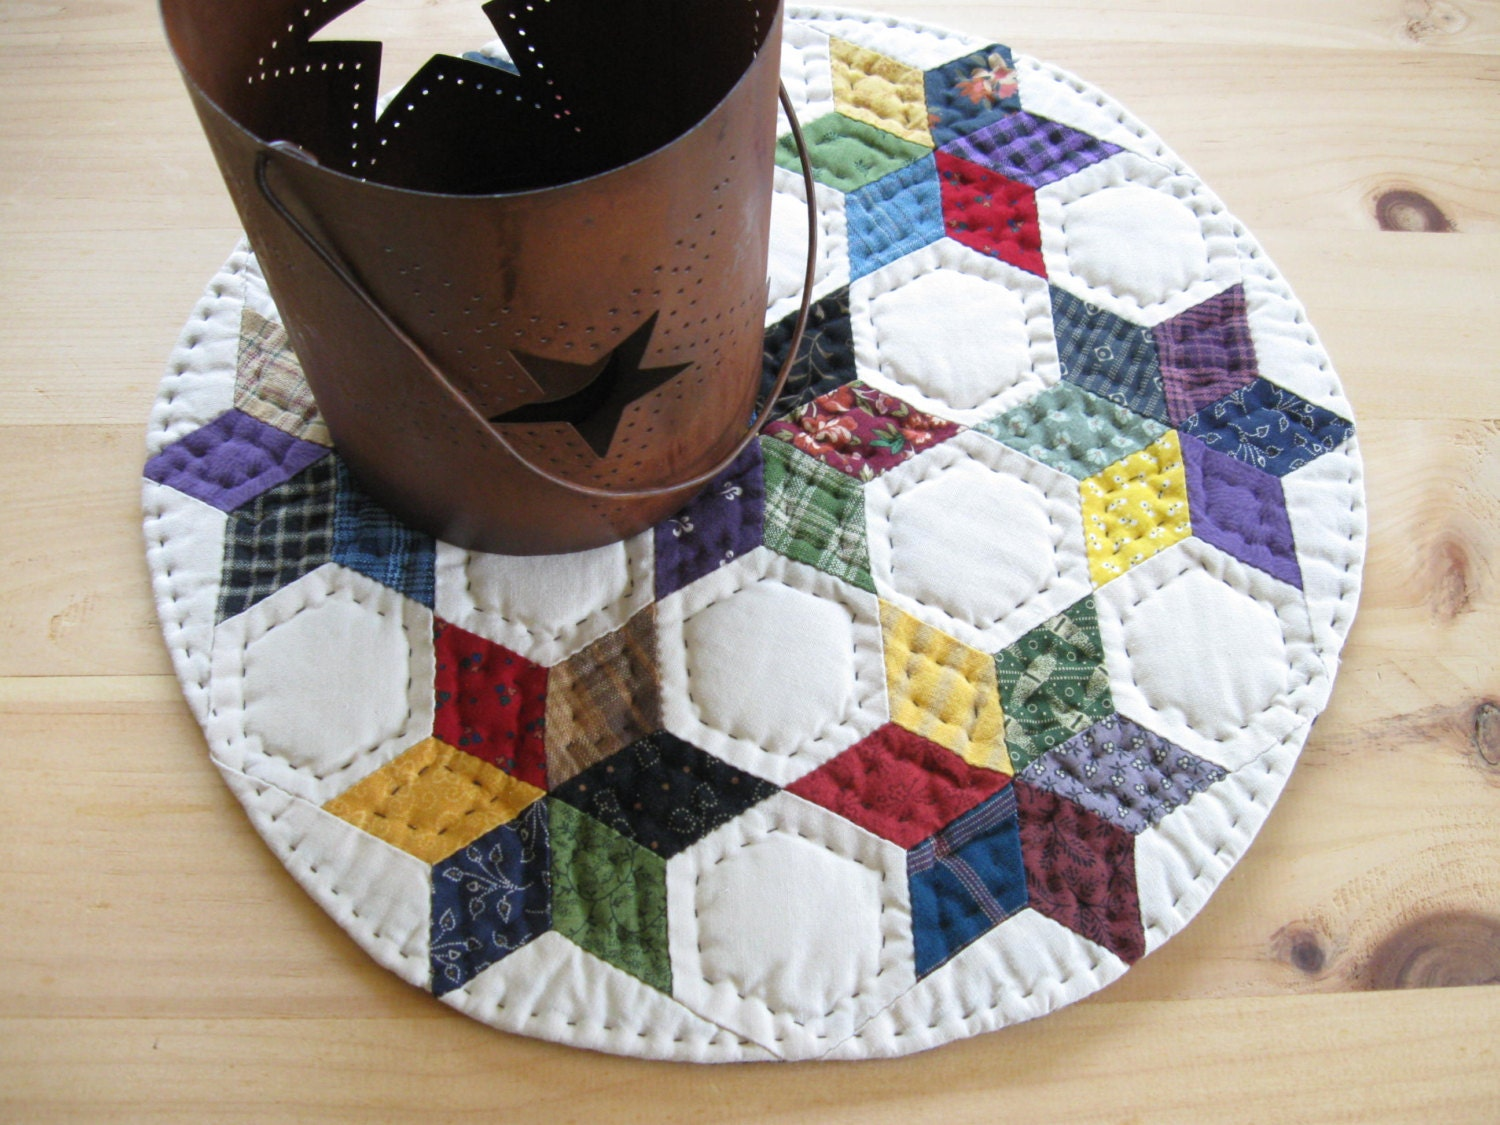 Round table quilt quilted table topper quilted candle mat for Round table runner quilt pattern